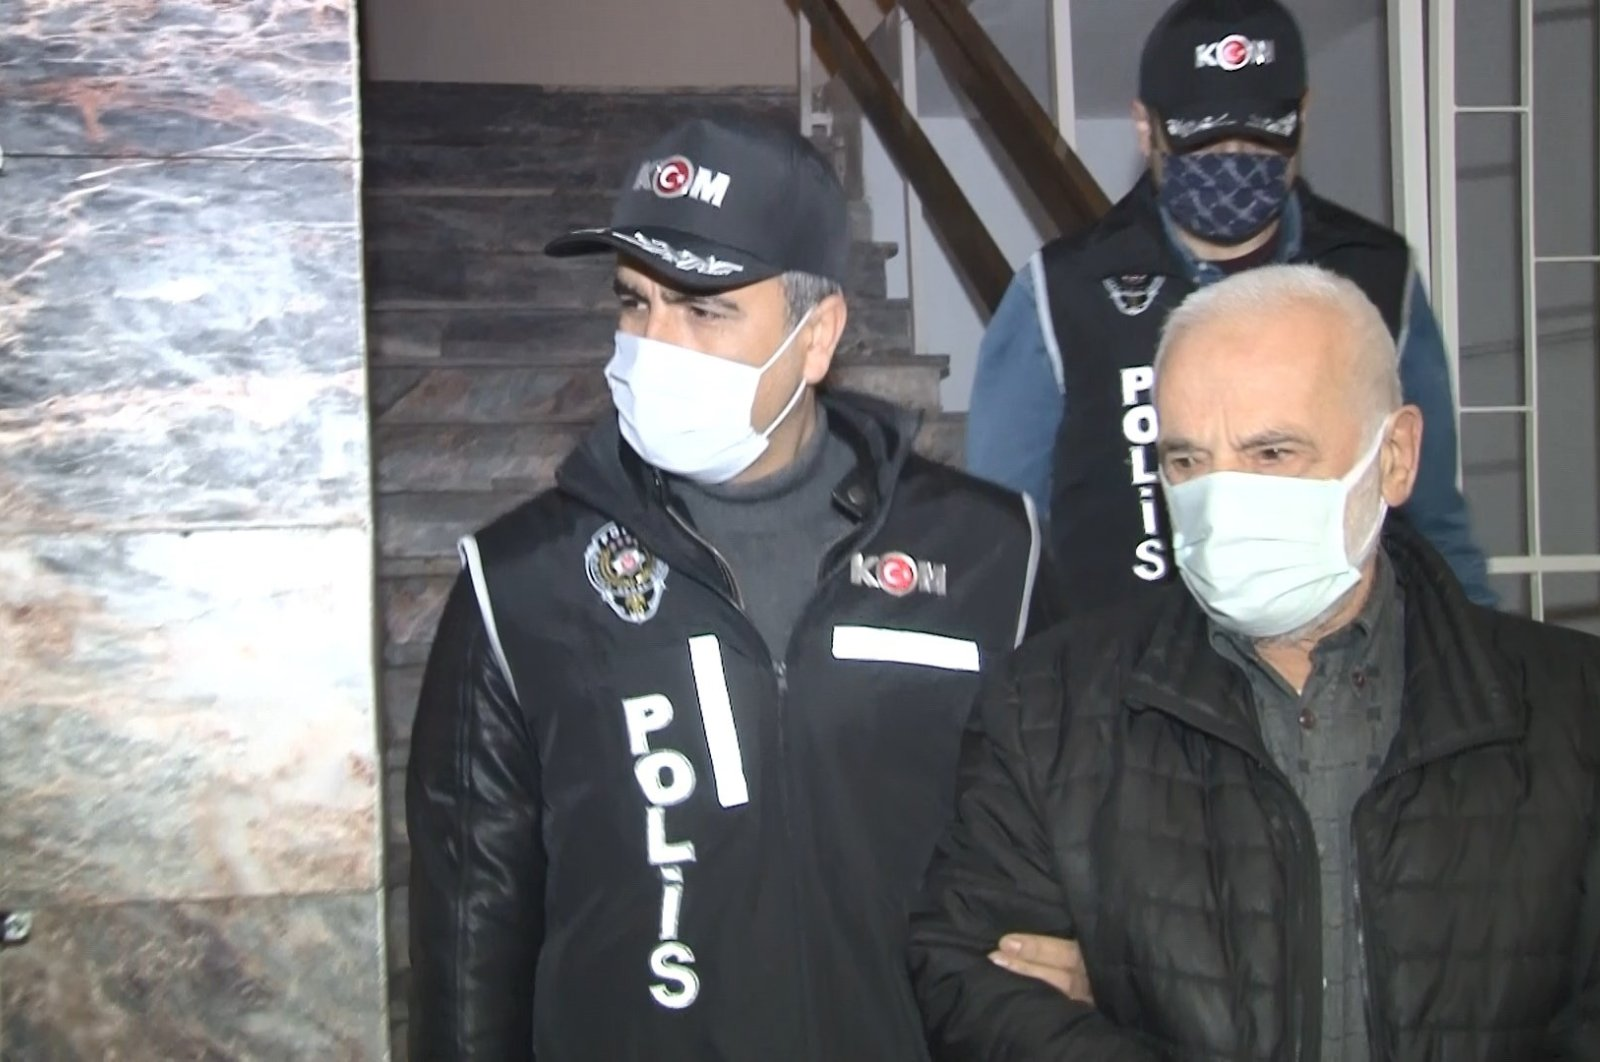 A police officer escorts a FETÖ suspect captured in Istanbul, Turkey, Jan. 26, 2021. (İHA PHOTO)